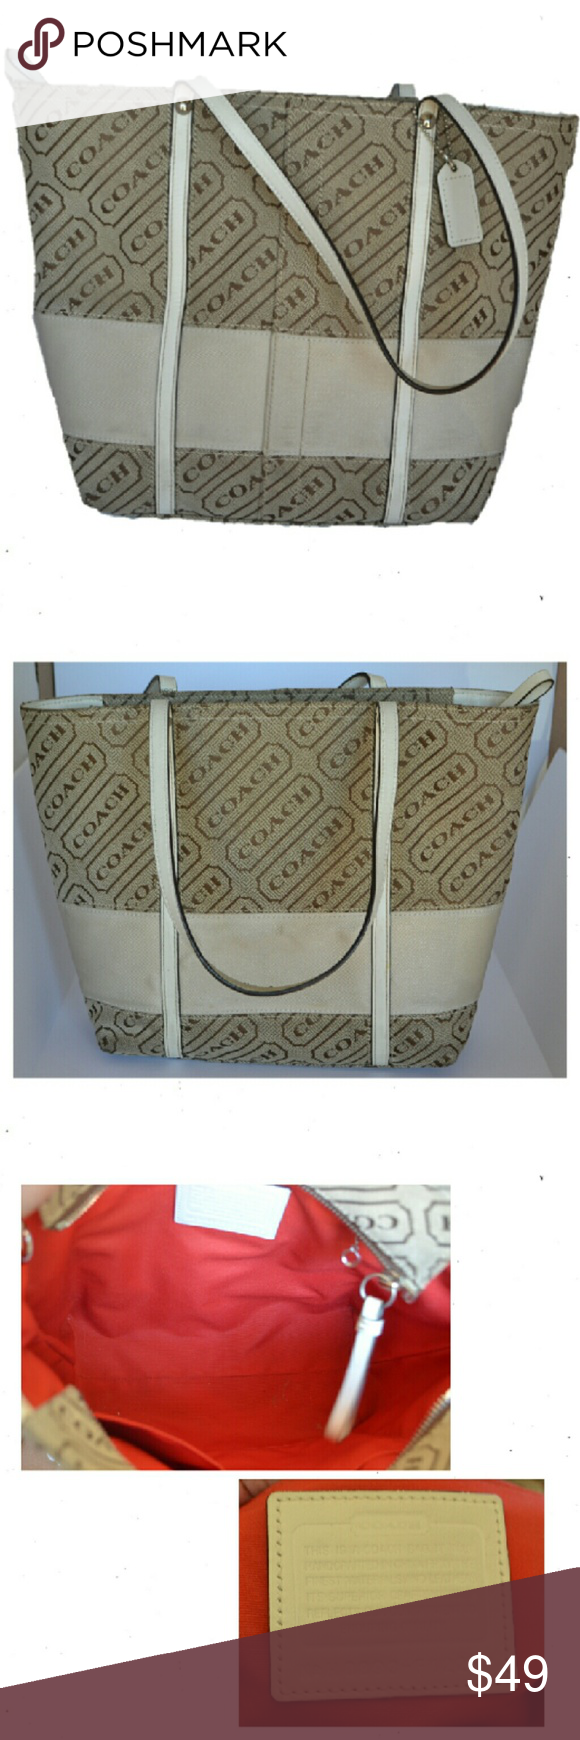 "Coach Medium Tote Medium Tote tan canvas base with brown printed Coach logo. Two leather handles. Wide Creme band accent at base of tote. Hangtag. Red fabric interior, one inner zip pocket and small inner storage compartments. Full zip closure. H10"" W 13"" D 3"" SD 8"". EUC. Coach Bags Totes"